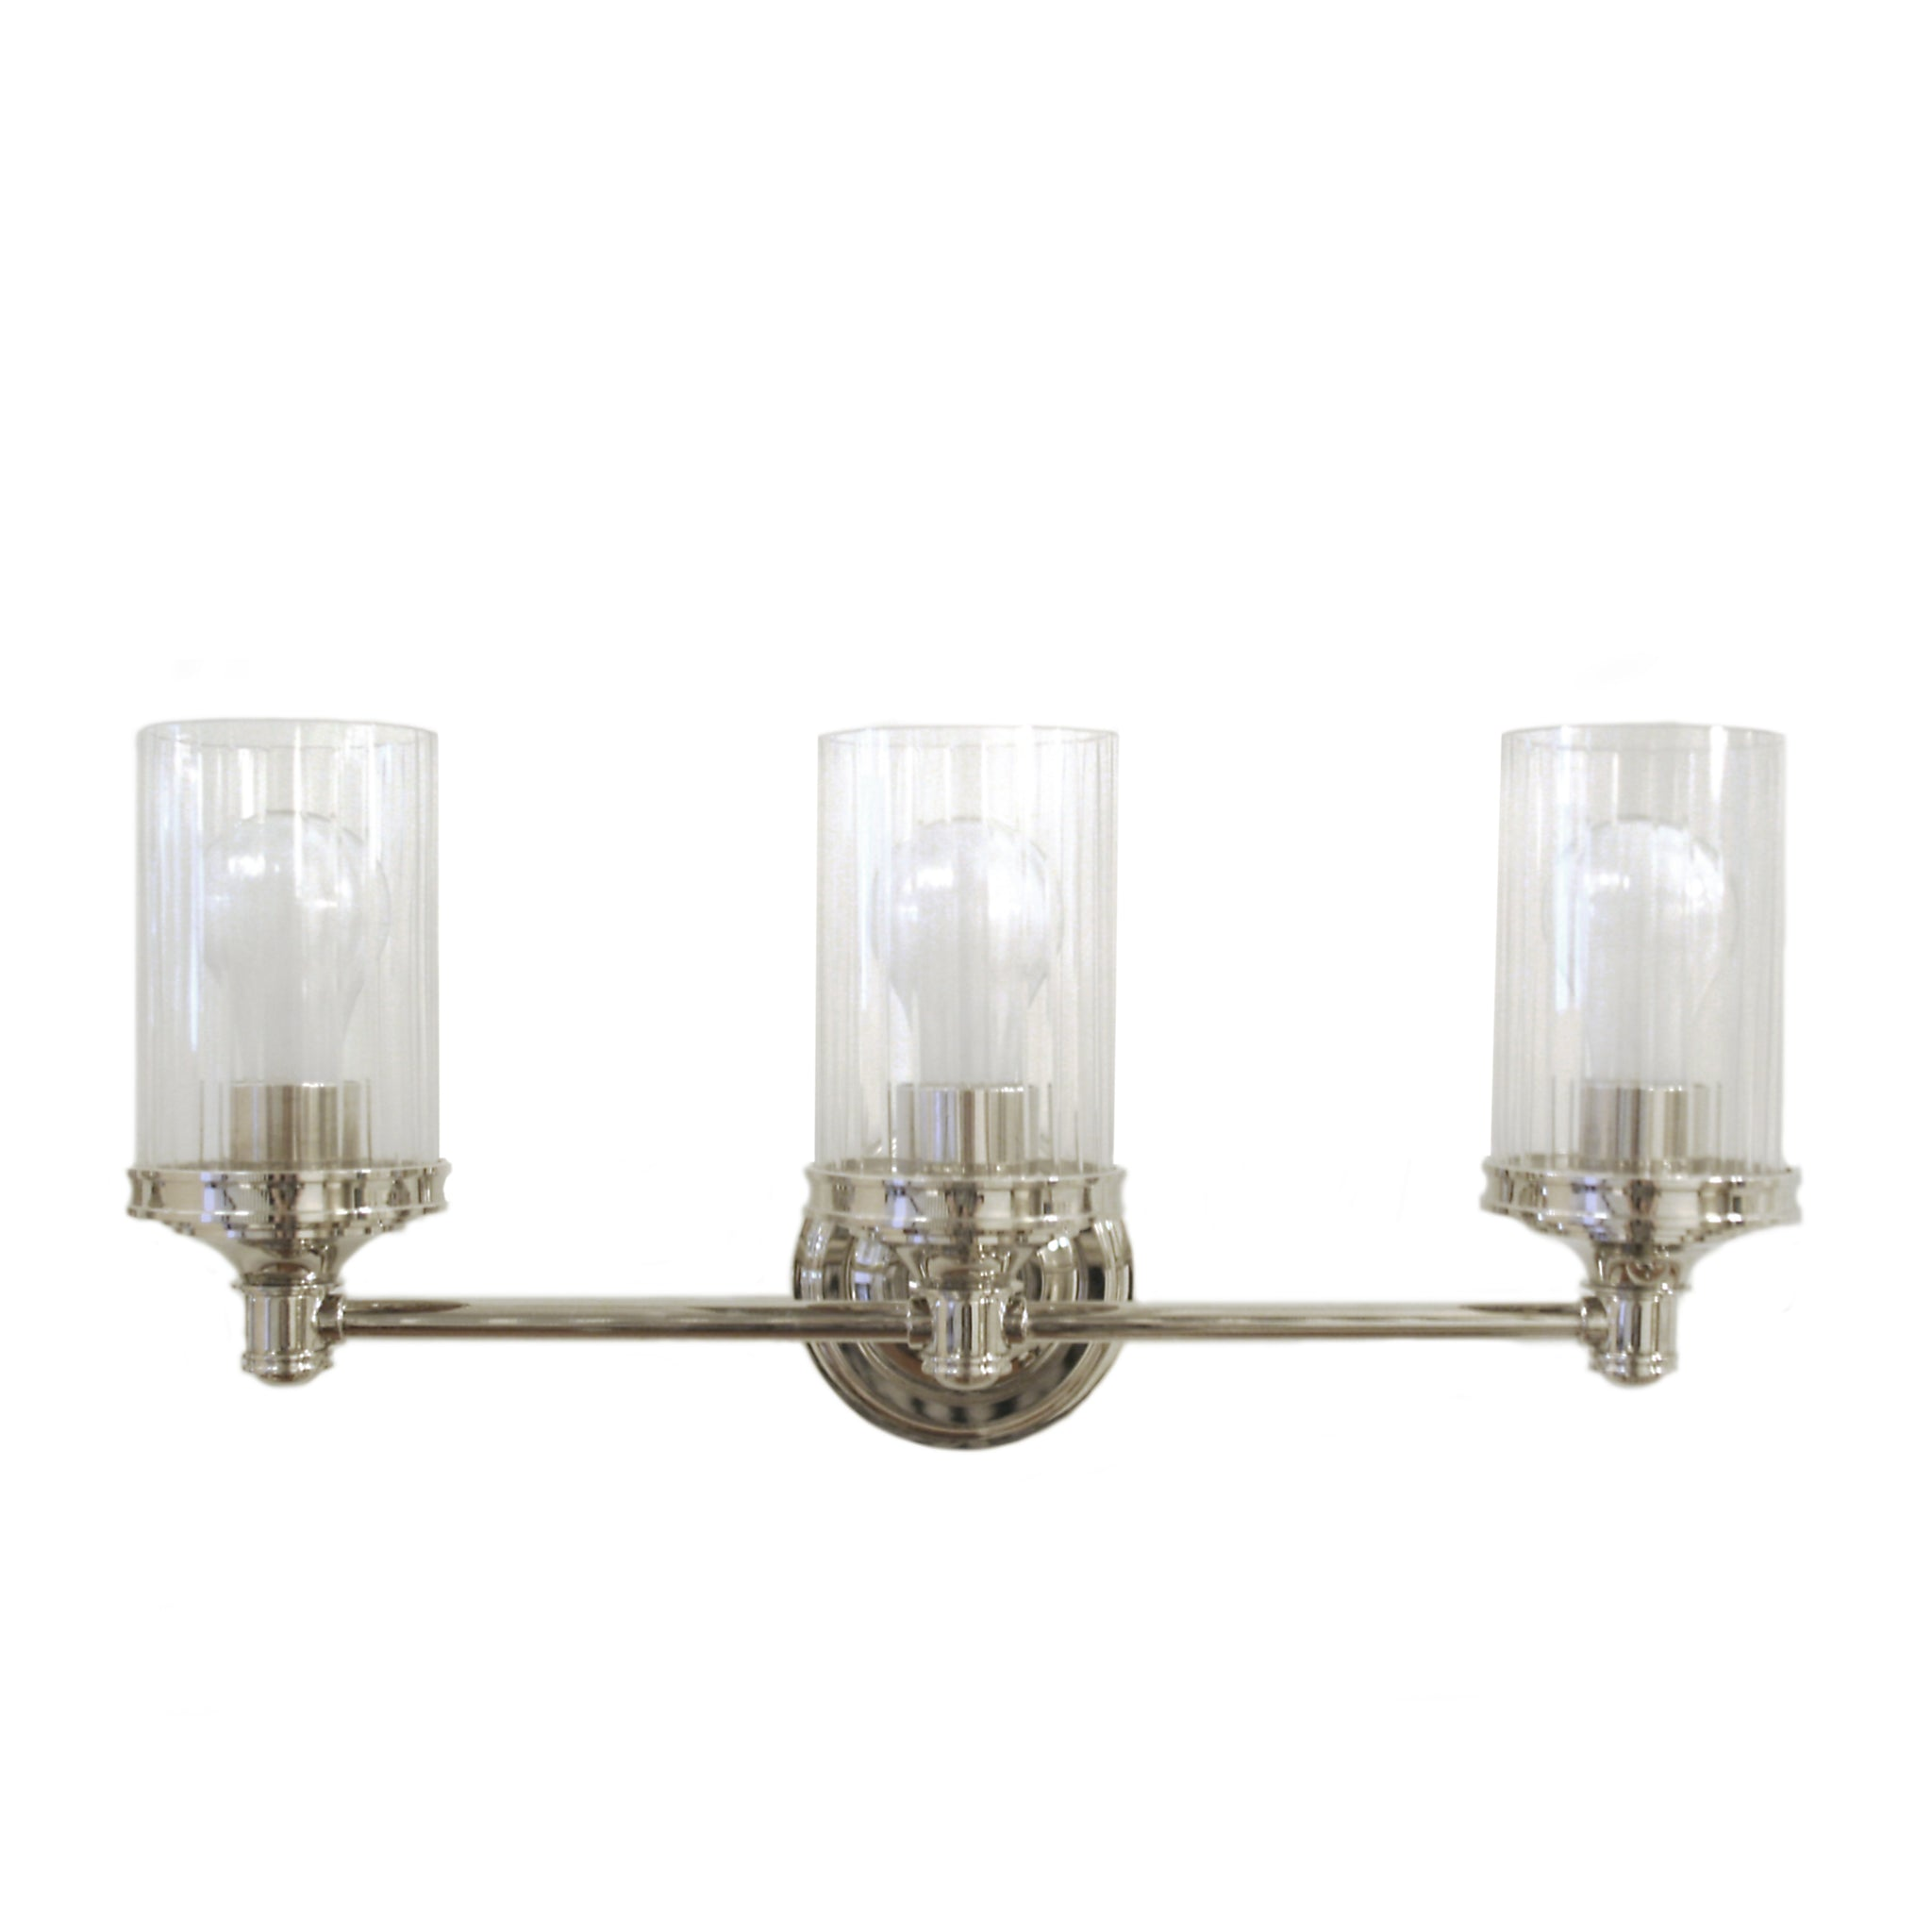 Ava Triple Sconce in polished nickel